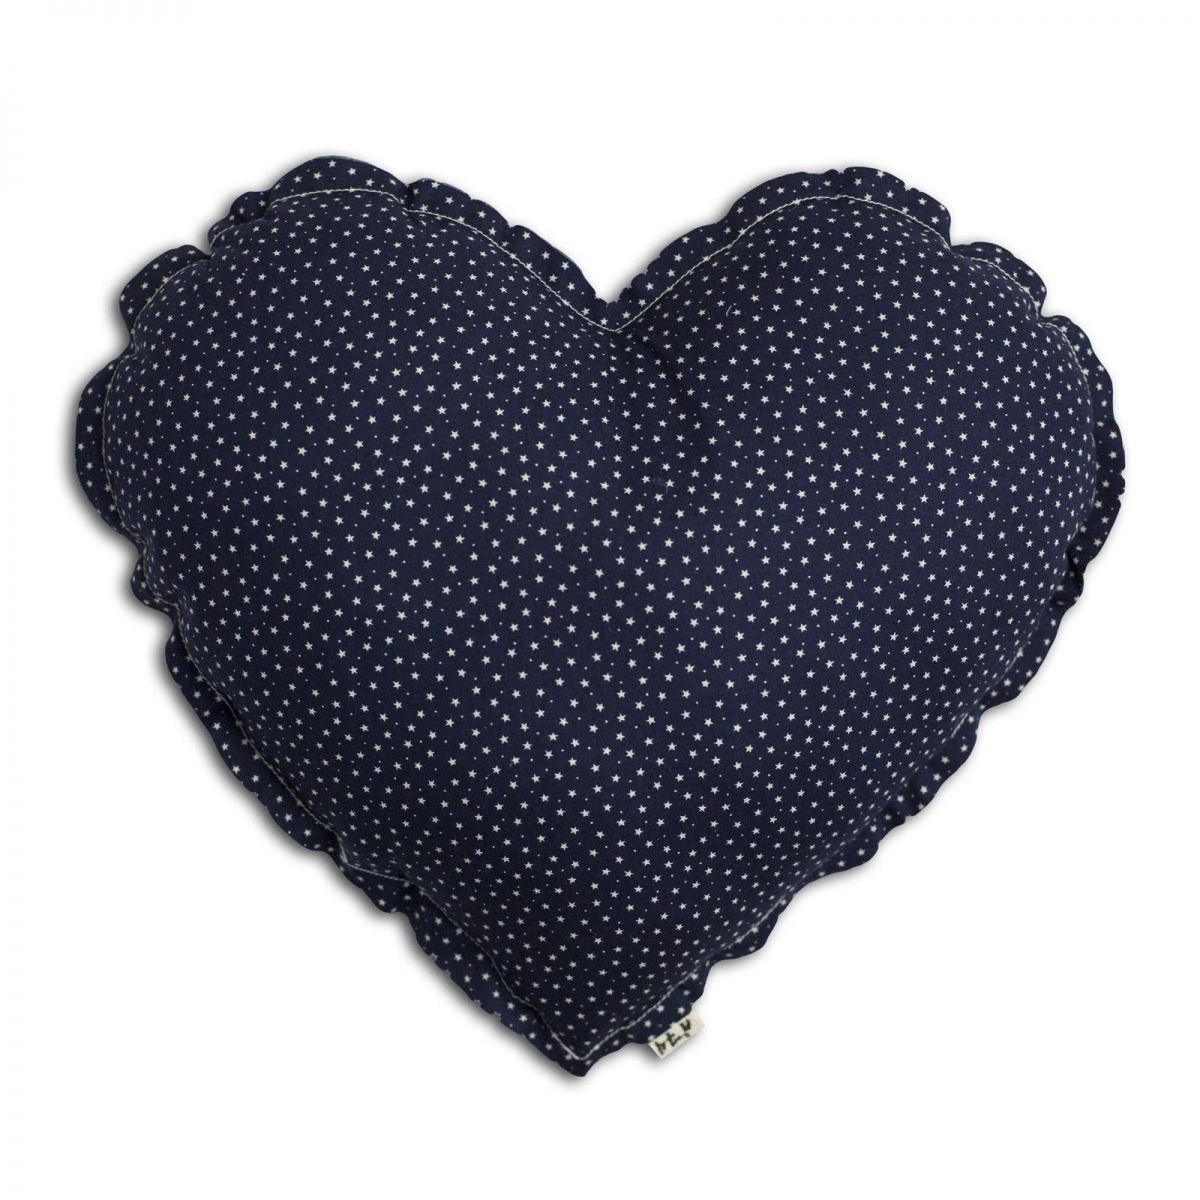 Numero 74 Heart Cushion night blue with white stars